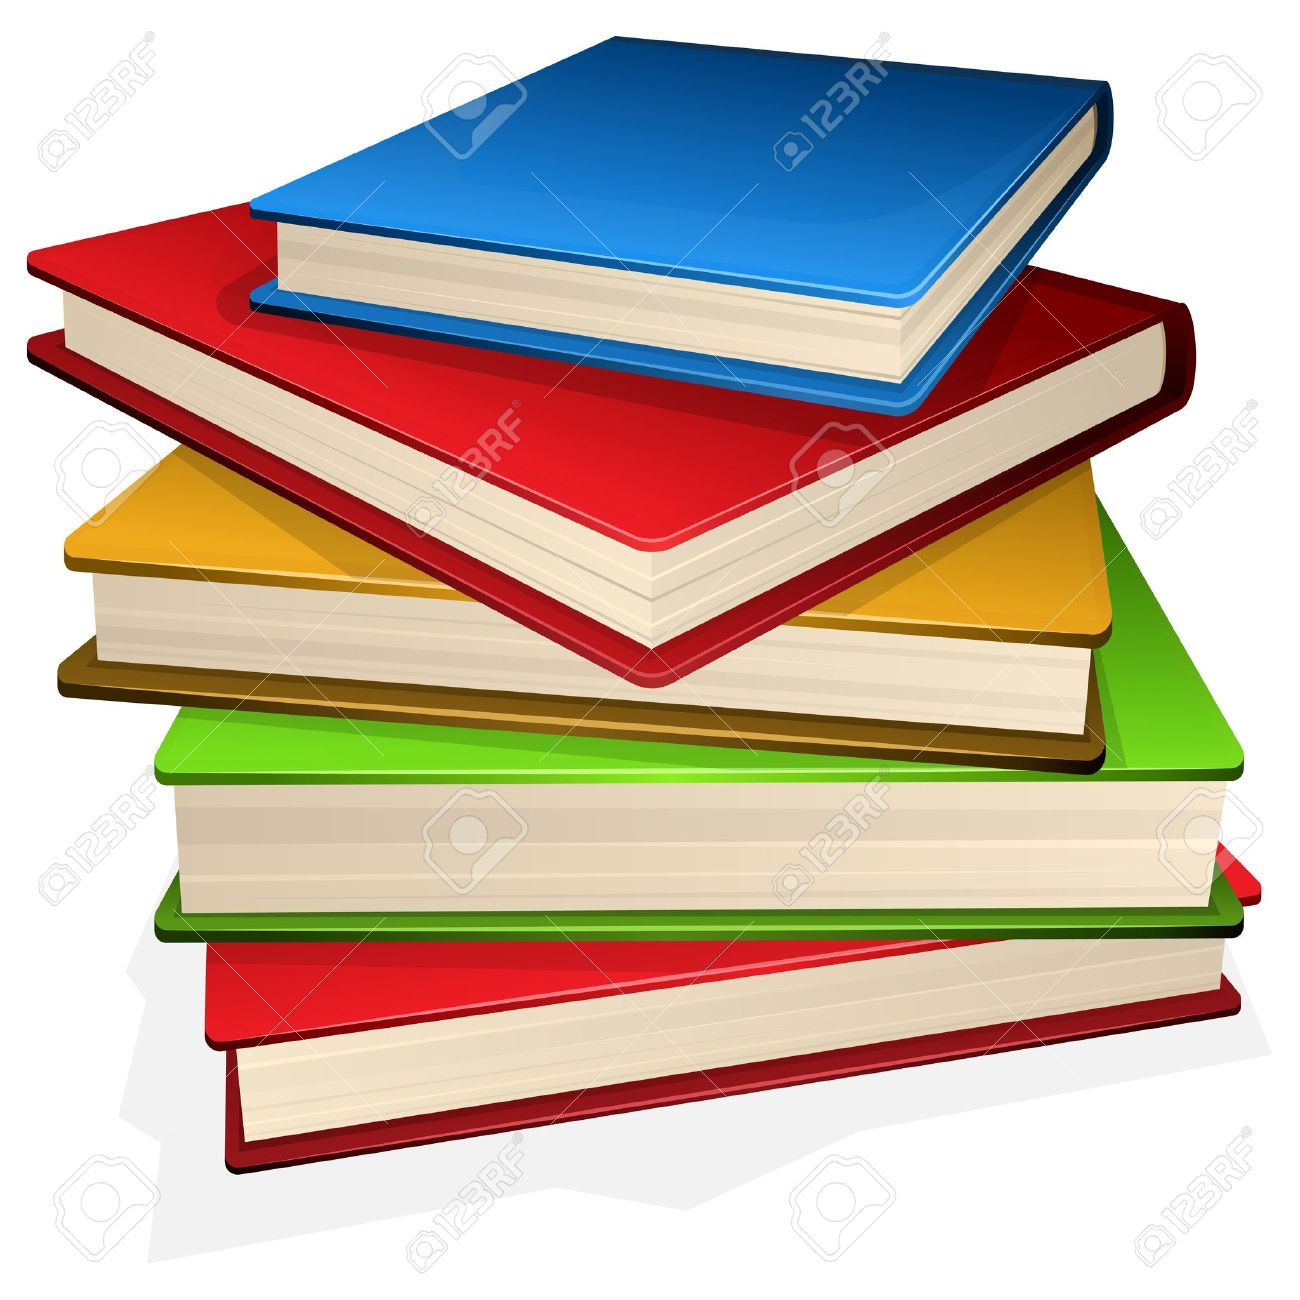 hight resolution of illustration pile of books isolated on white royalty free cliparts